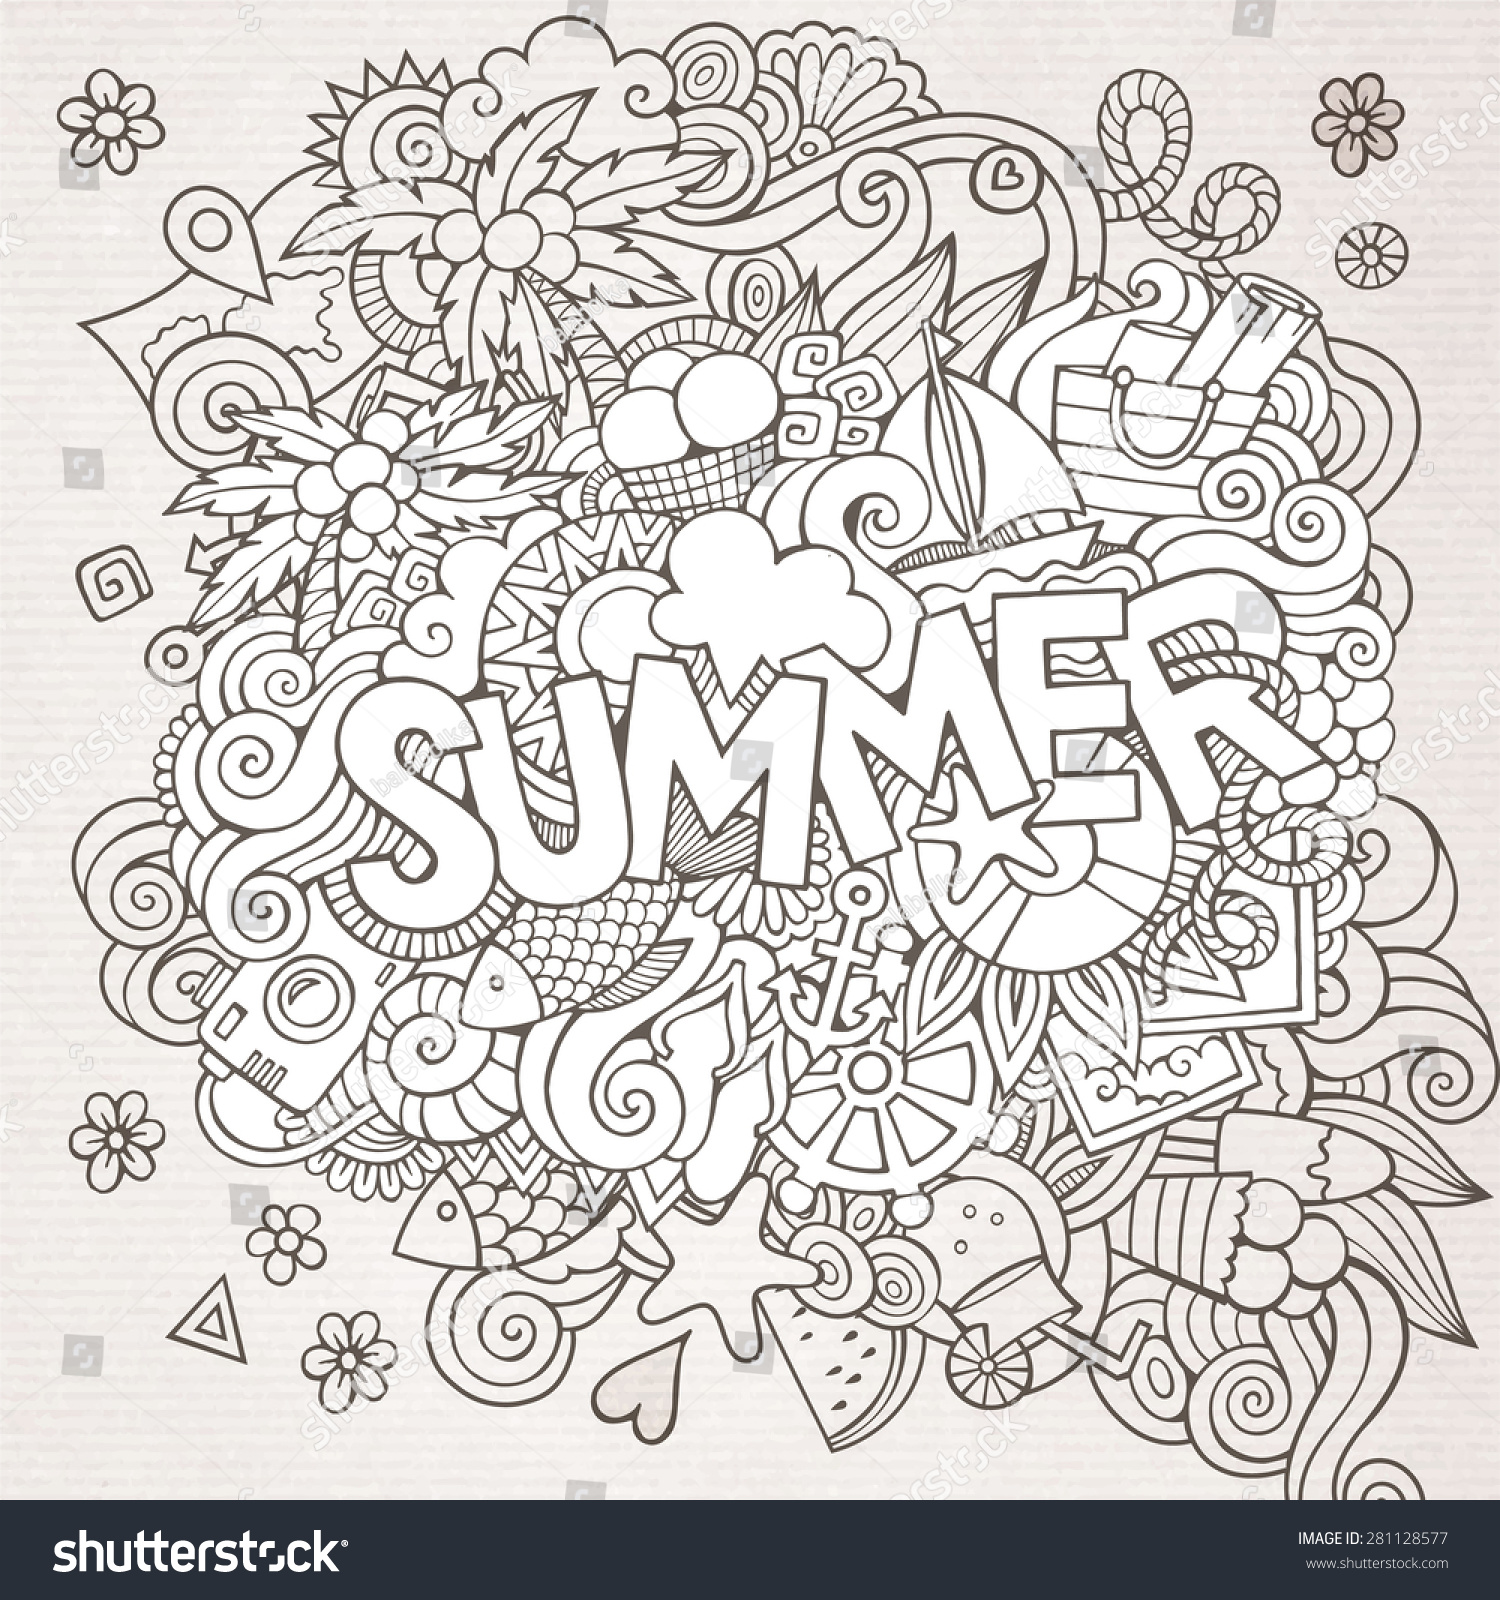 Stock vector music hand lettering and doodles elements - Summer Hand Lettering And Doodles Elements Vector Sketchy Illustration